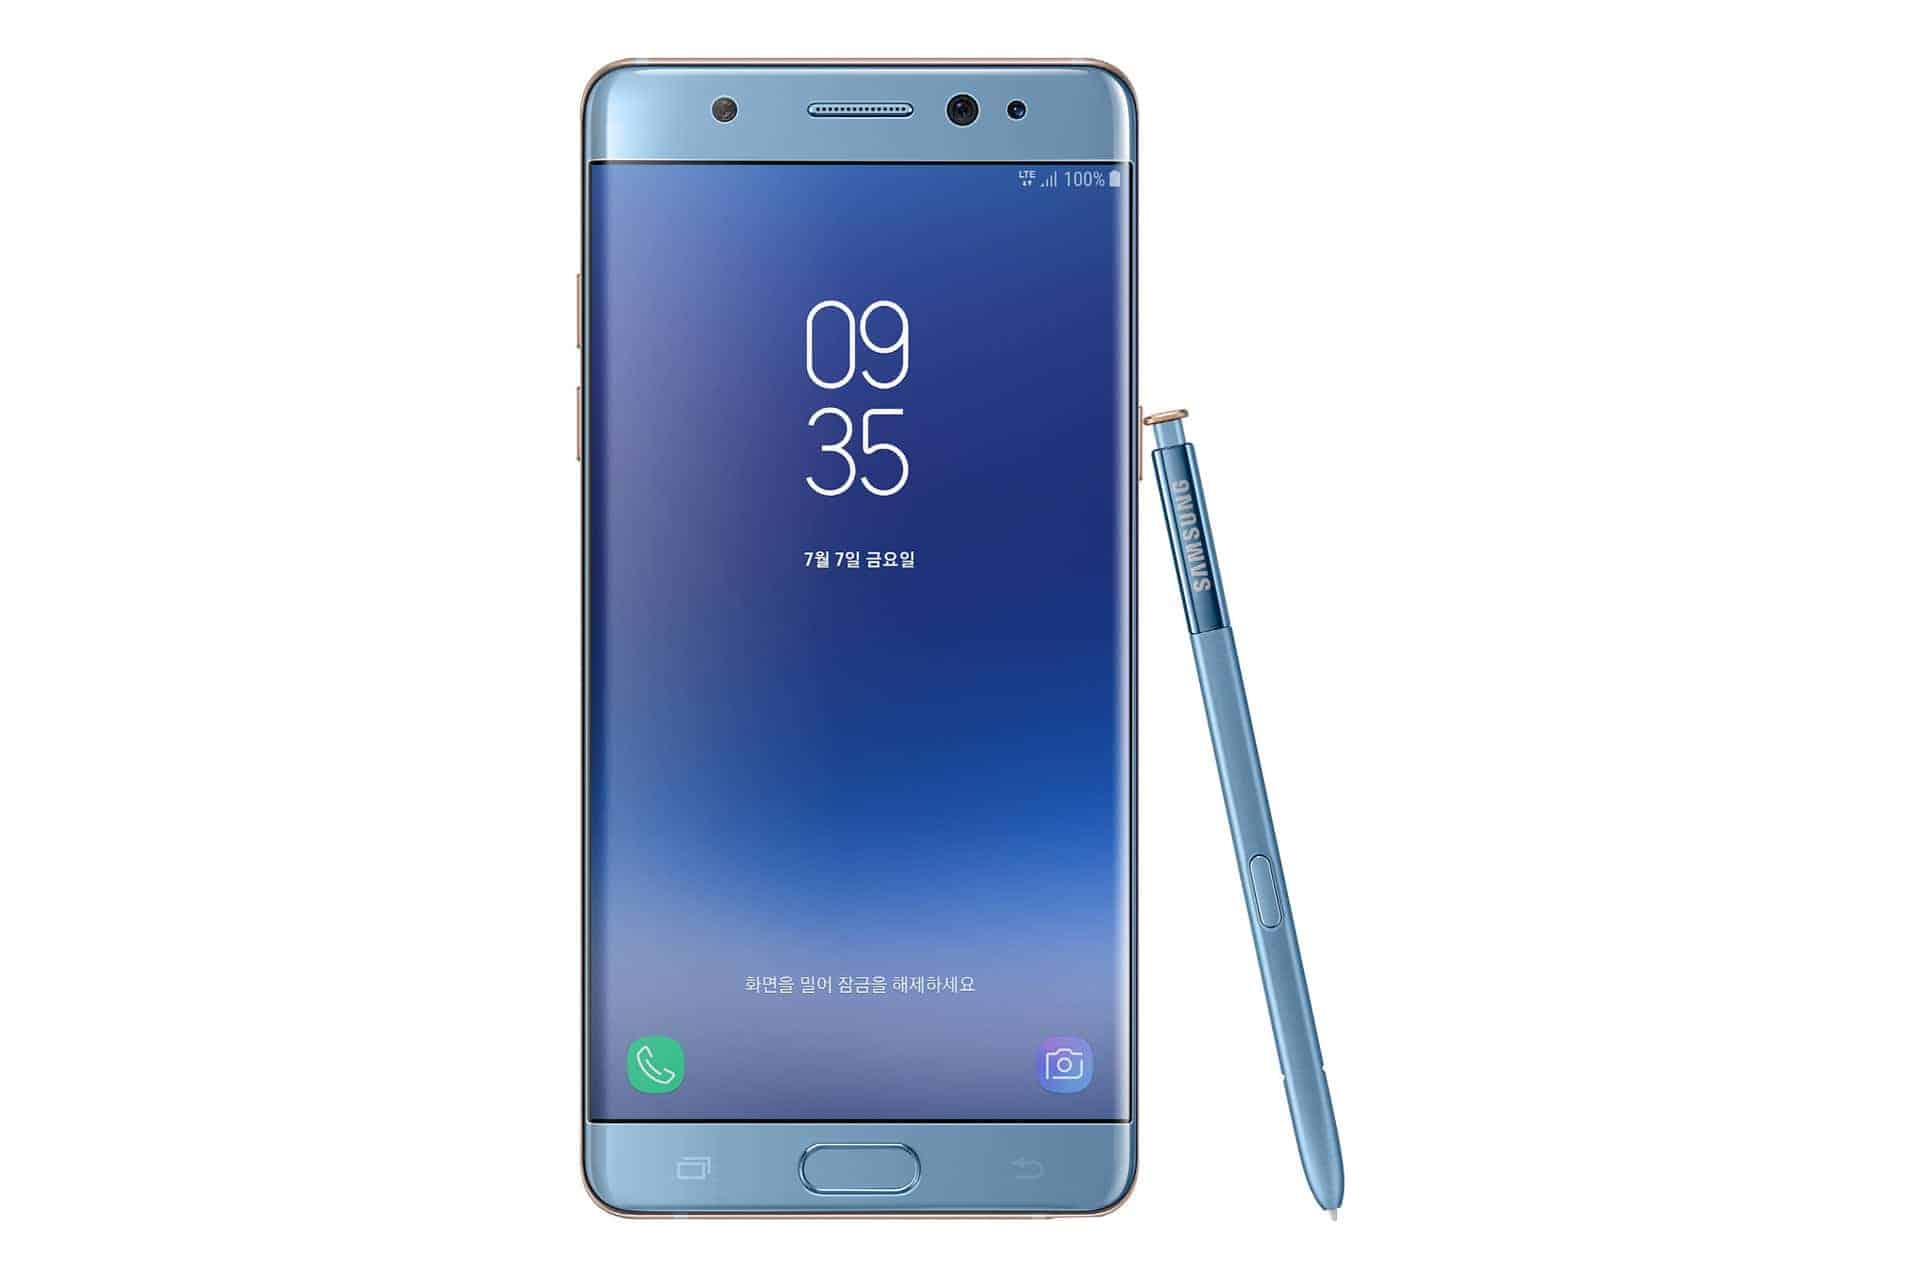 samsung galaxy note fan edition is official priced at